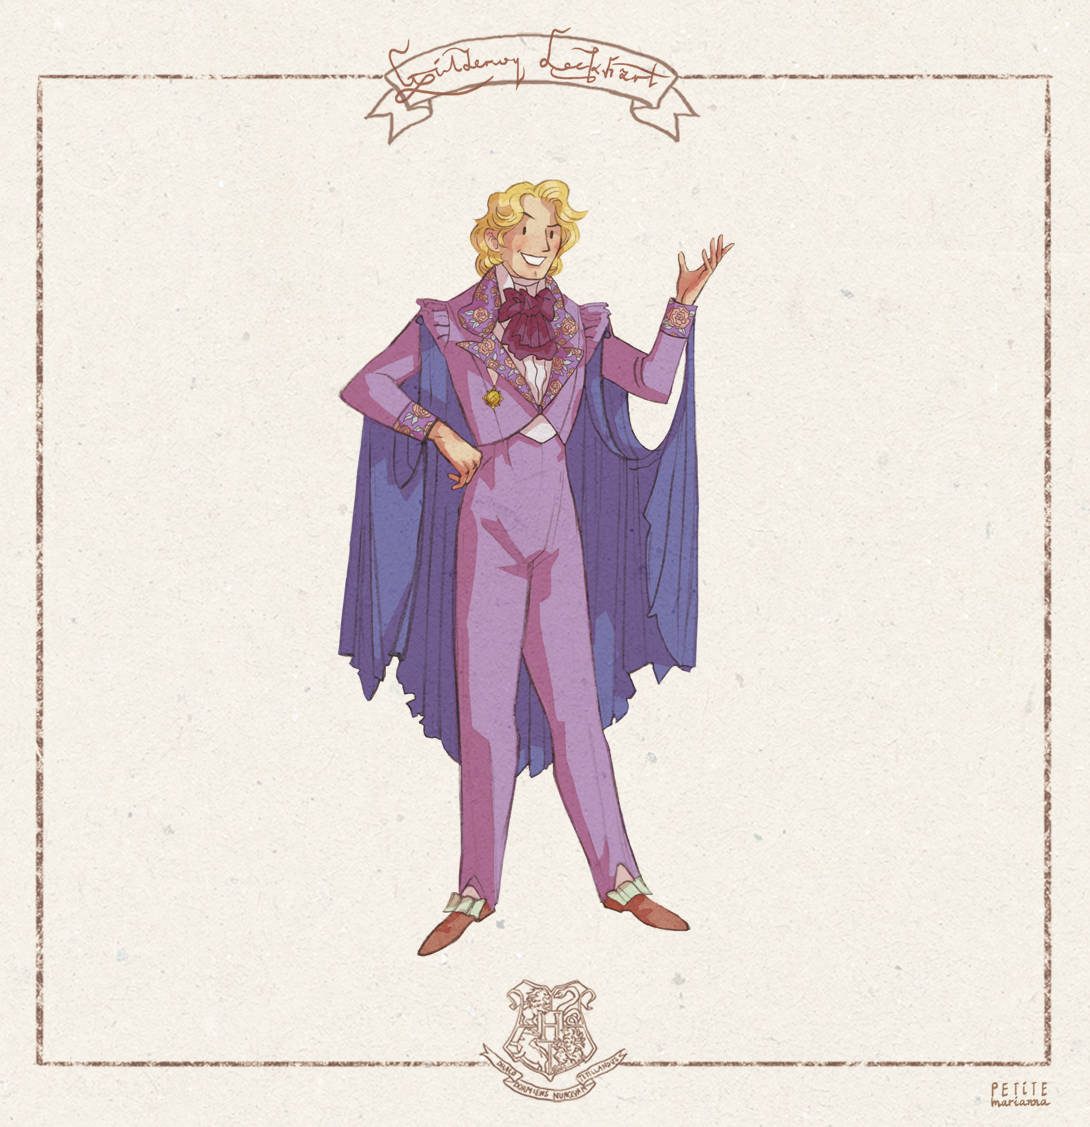 Next up, Magical Me!..ehm, I mean Gilderoy Lockhart! Being